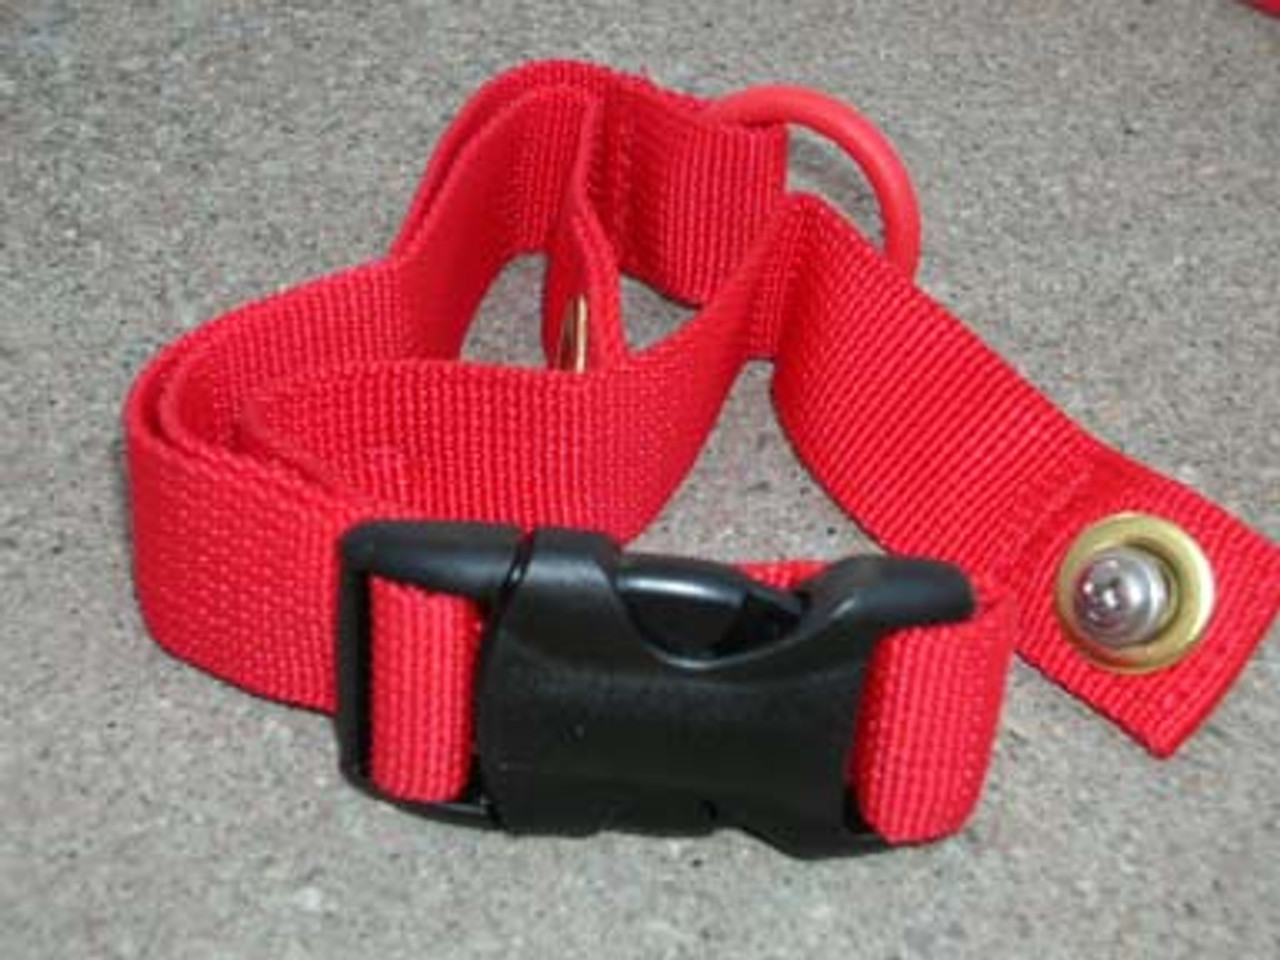 BOB ICSA Retention Strap, Duallie 2006-2010